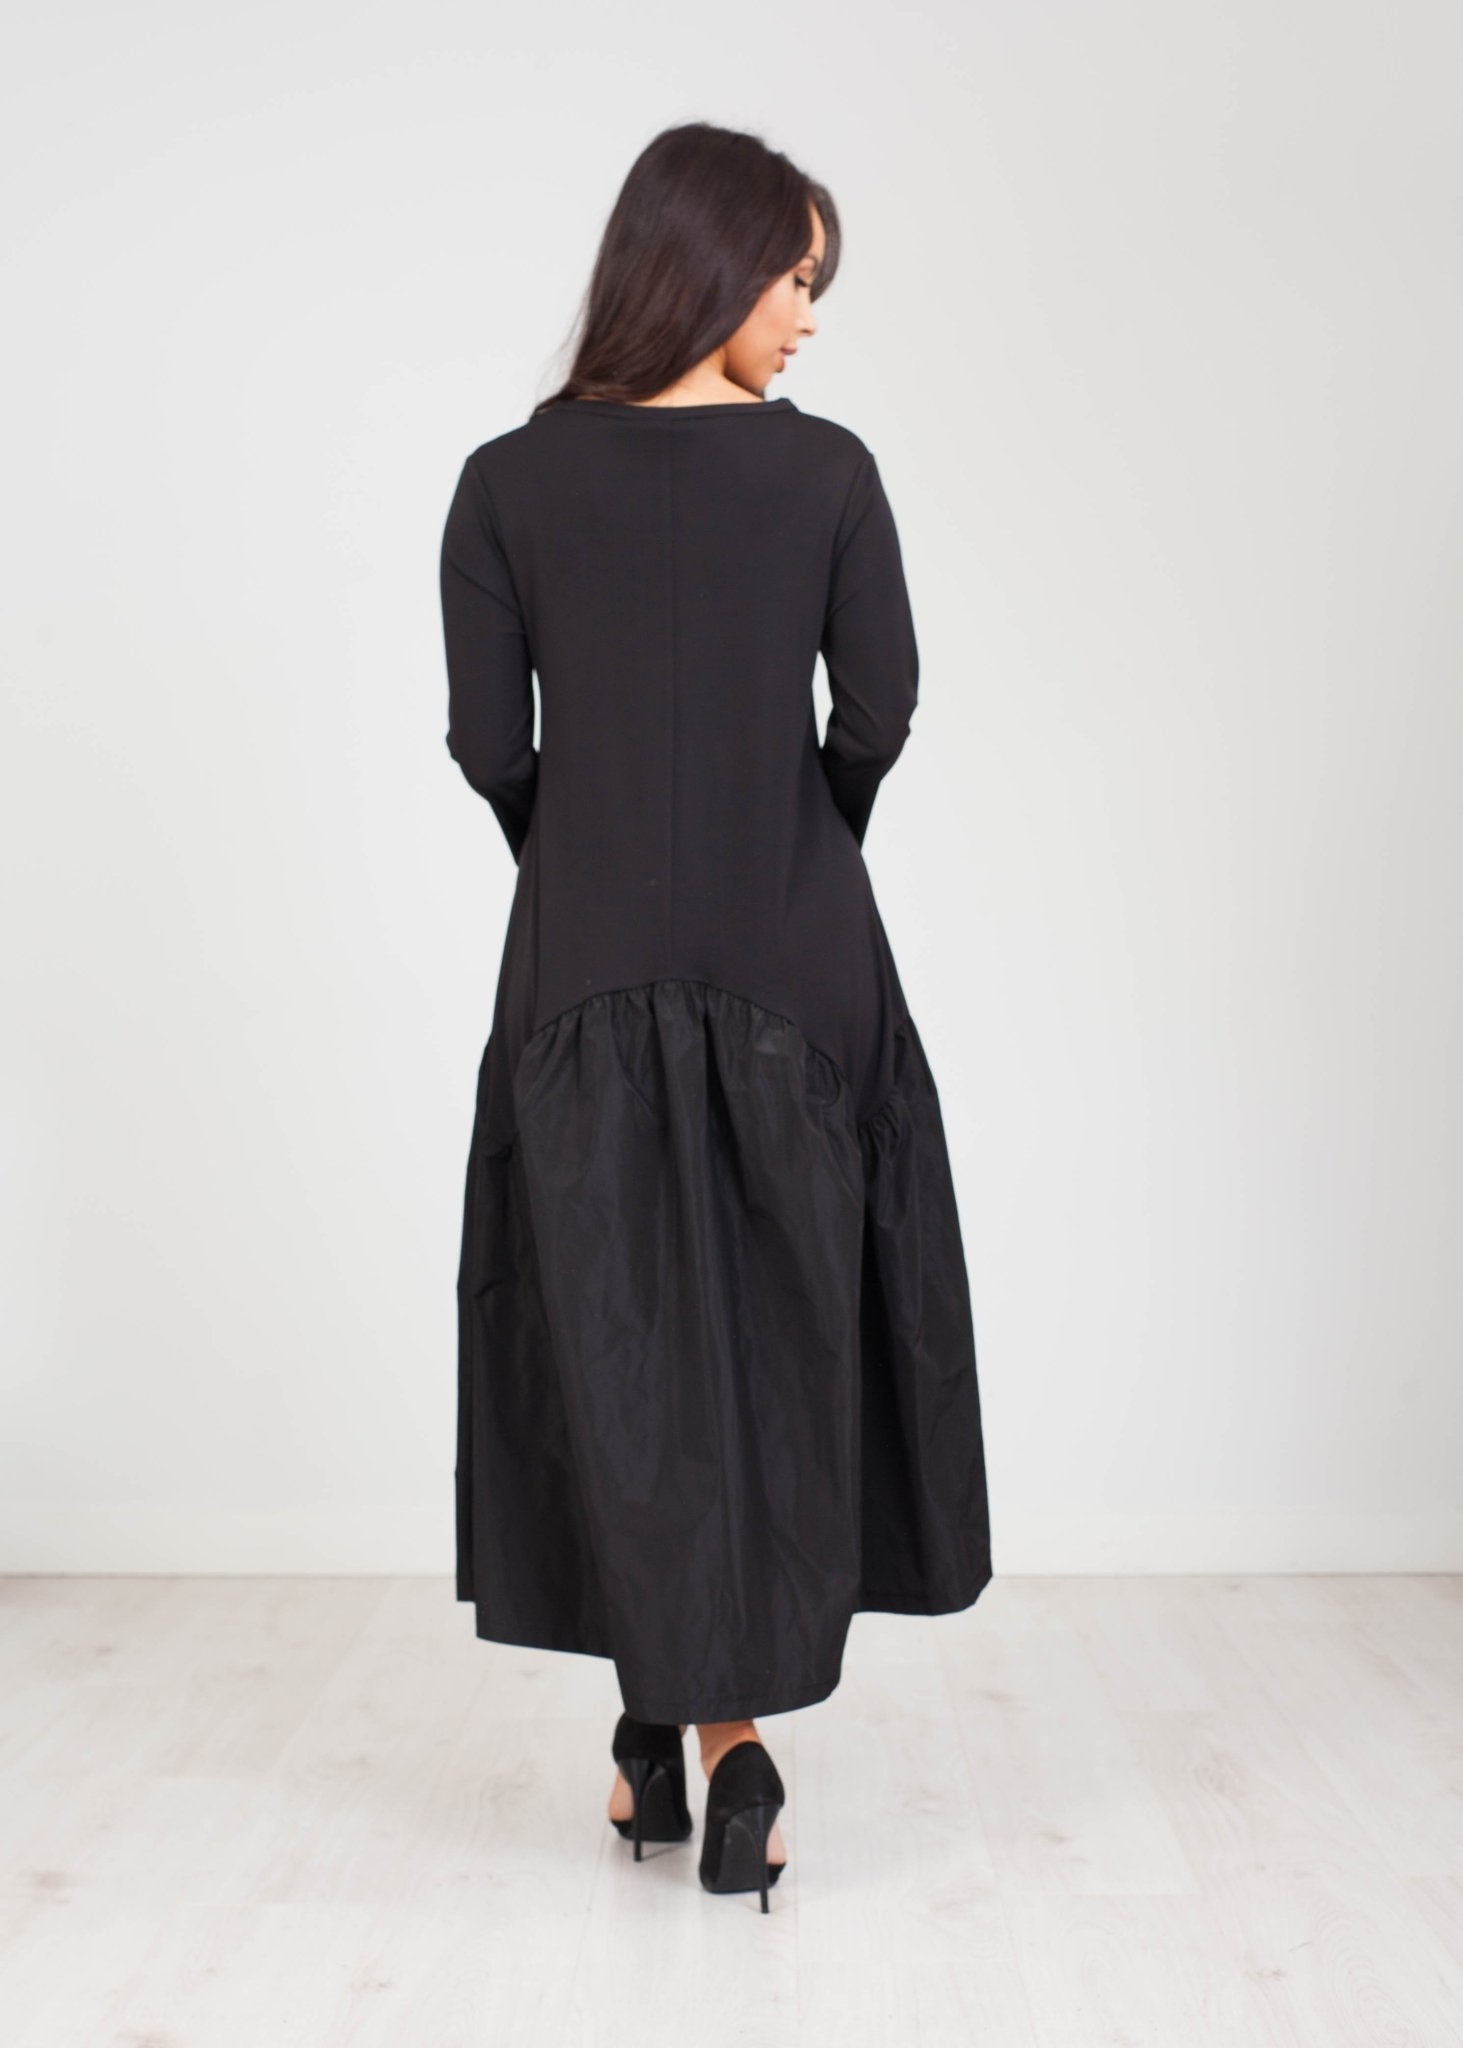 Cleo Midi Dress in Black - The Walk in Wardrobe